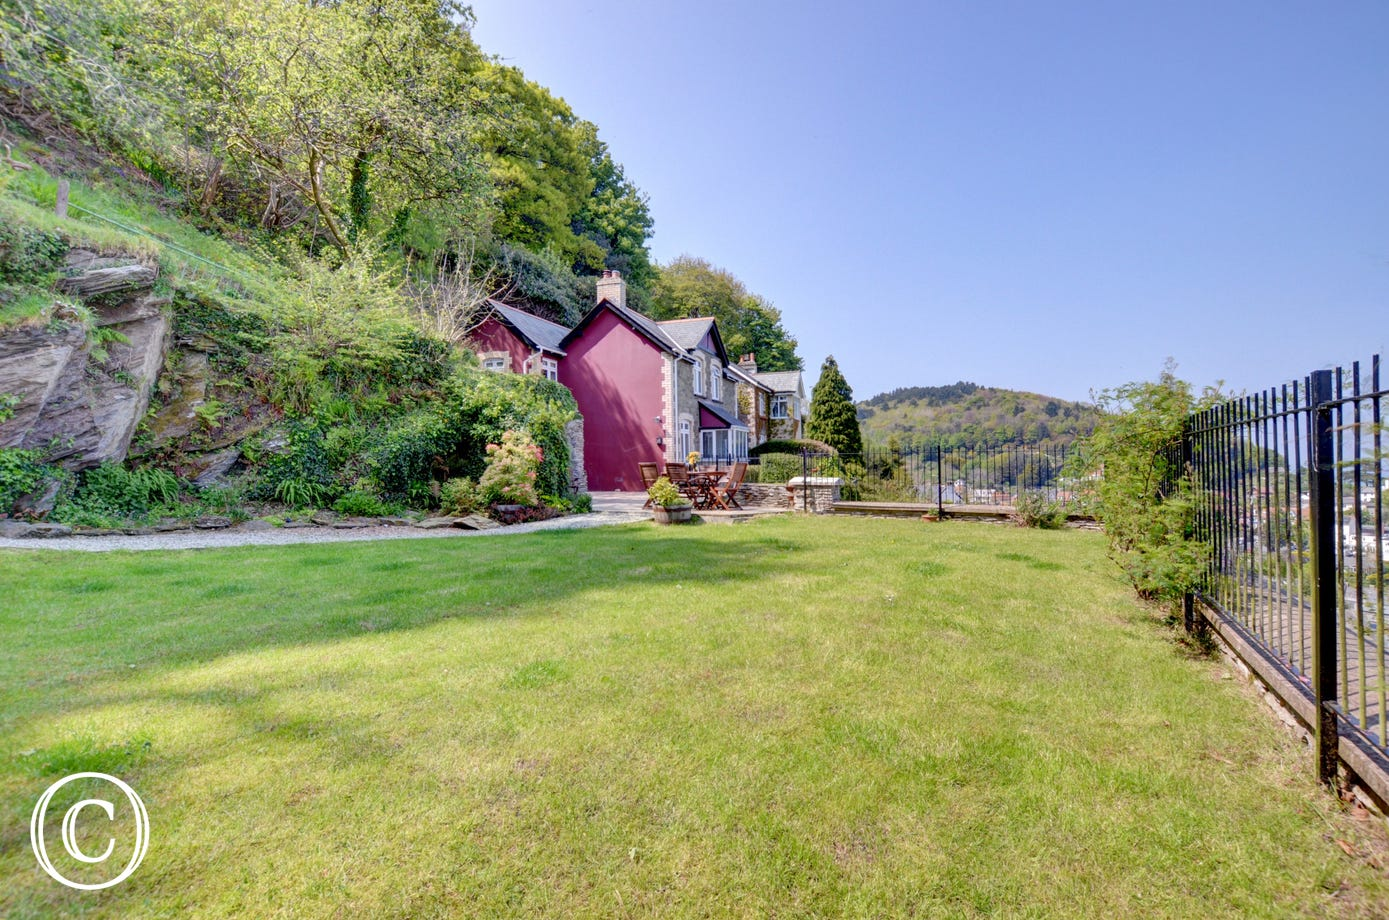 The cottage provides an ideal all year round base for those wishing to explore the splendour of Exmoor